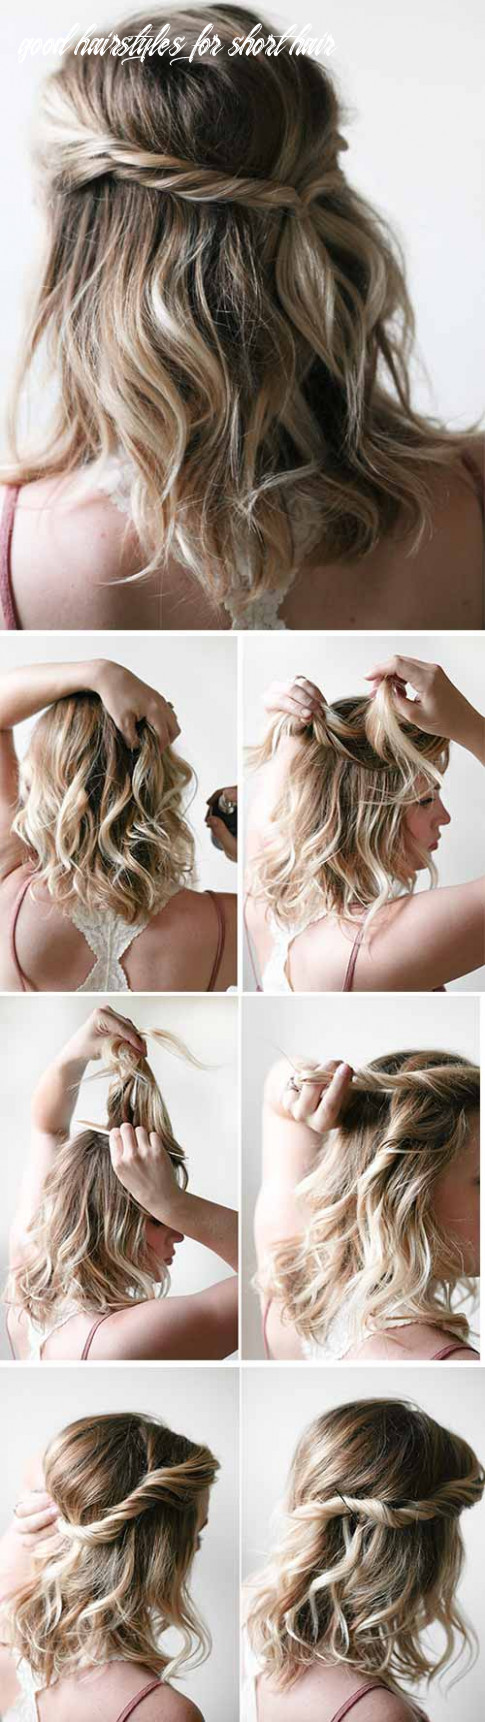 9 incredible diy short hairstyles a step by step guide good hairstyles for short hair